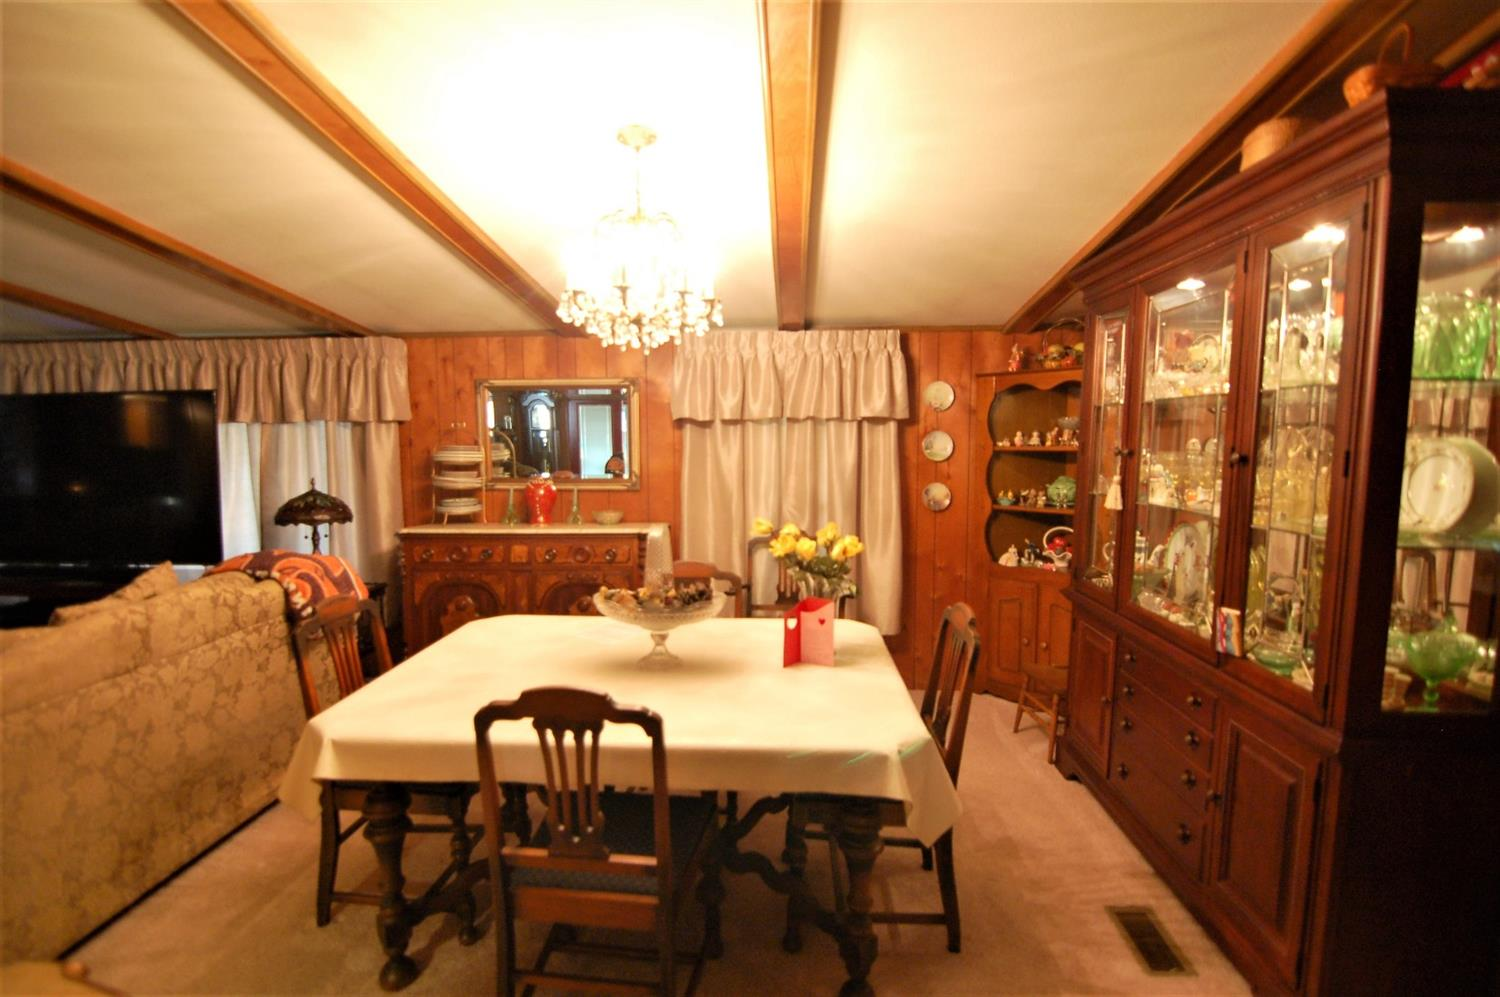 Photo 3 for 206 Hooven Rd Whitewater Twp., OH 45033